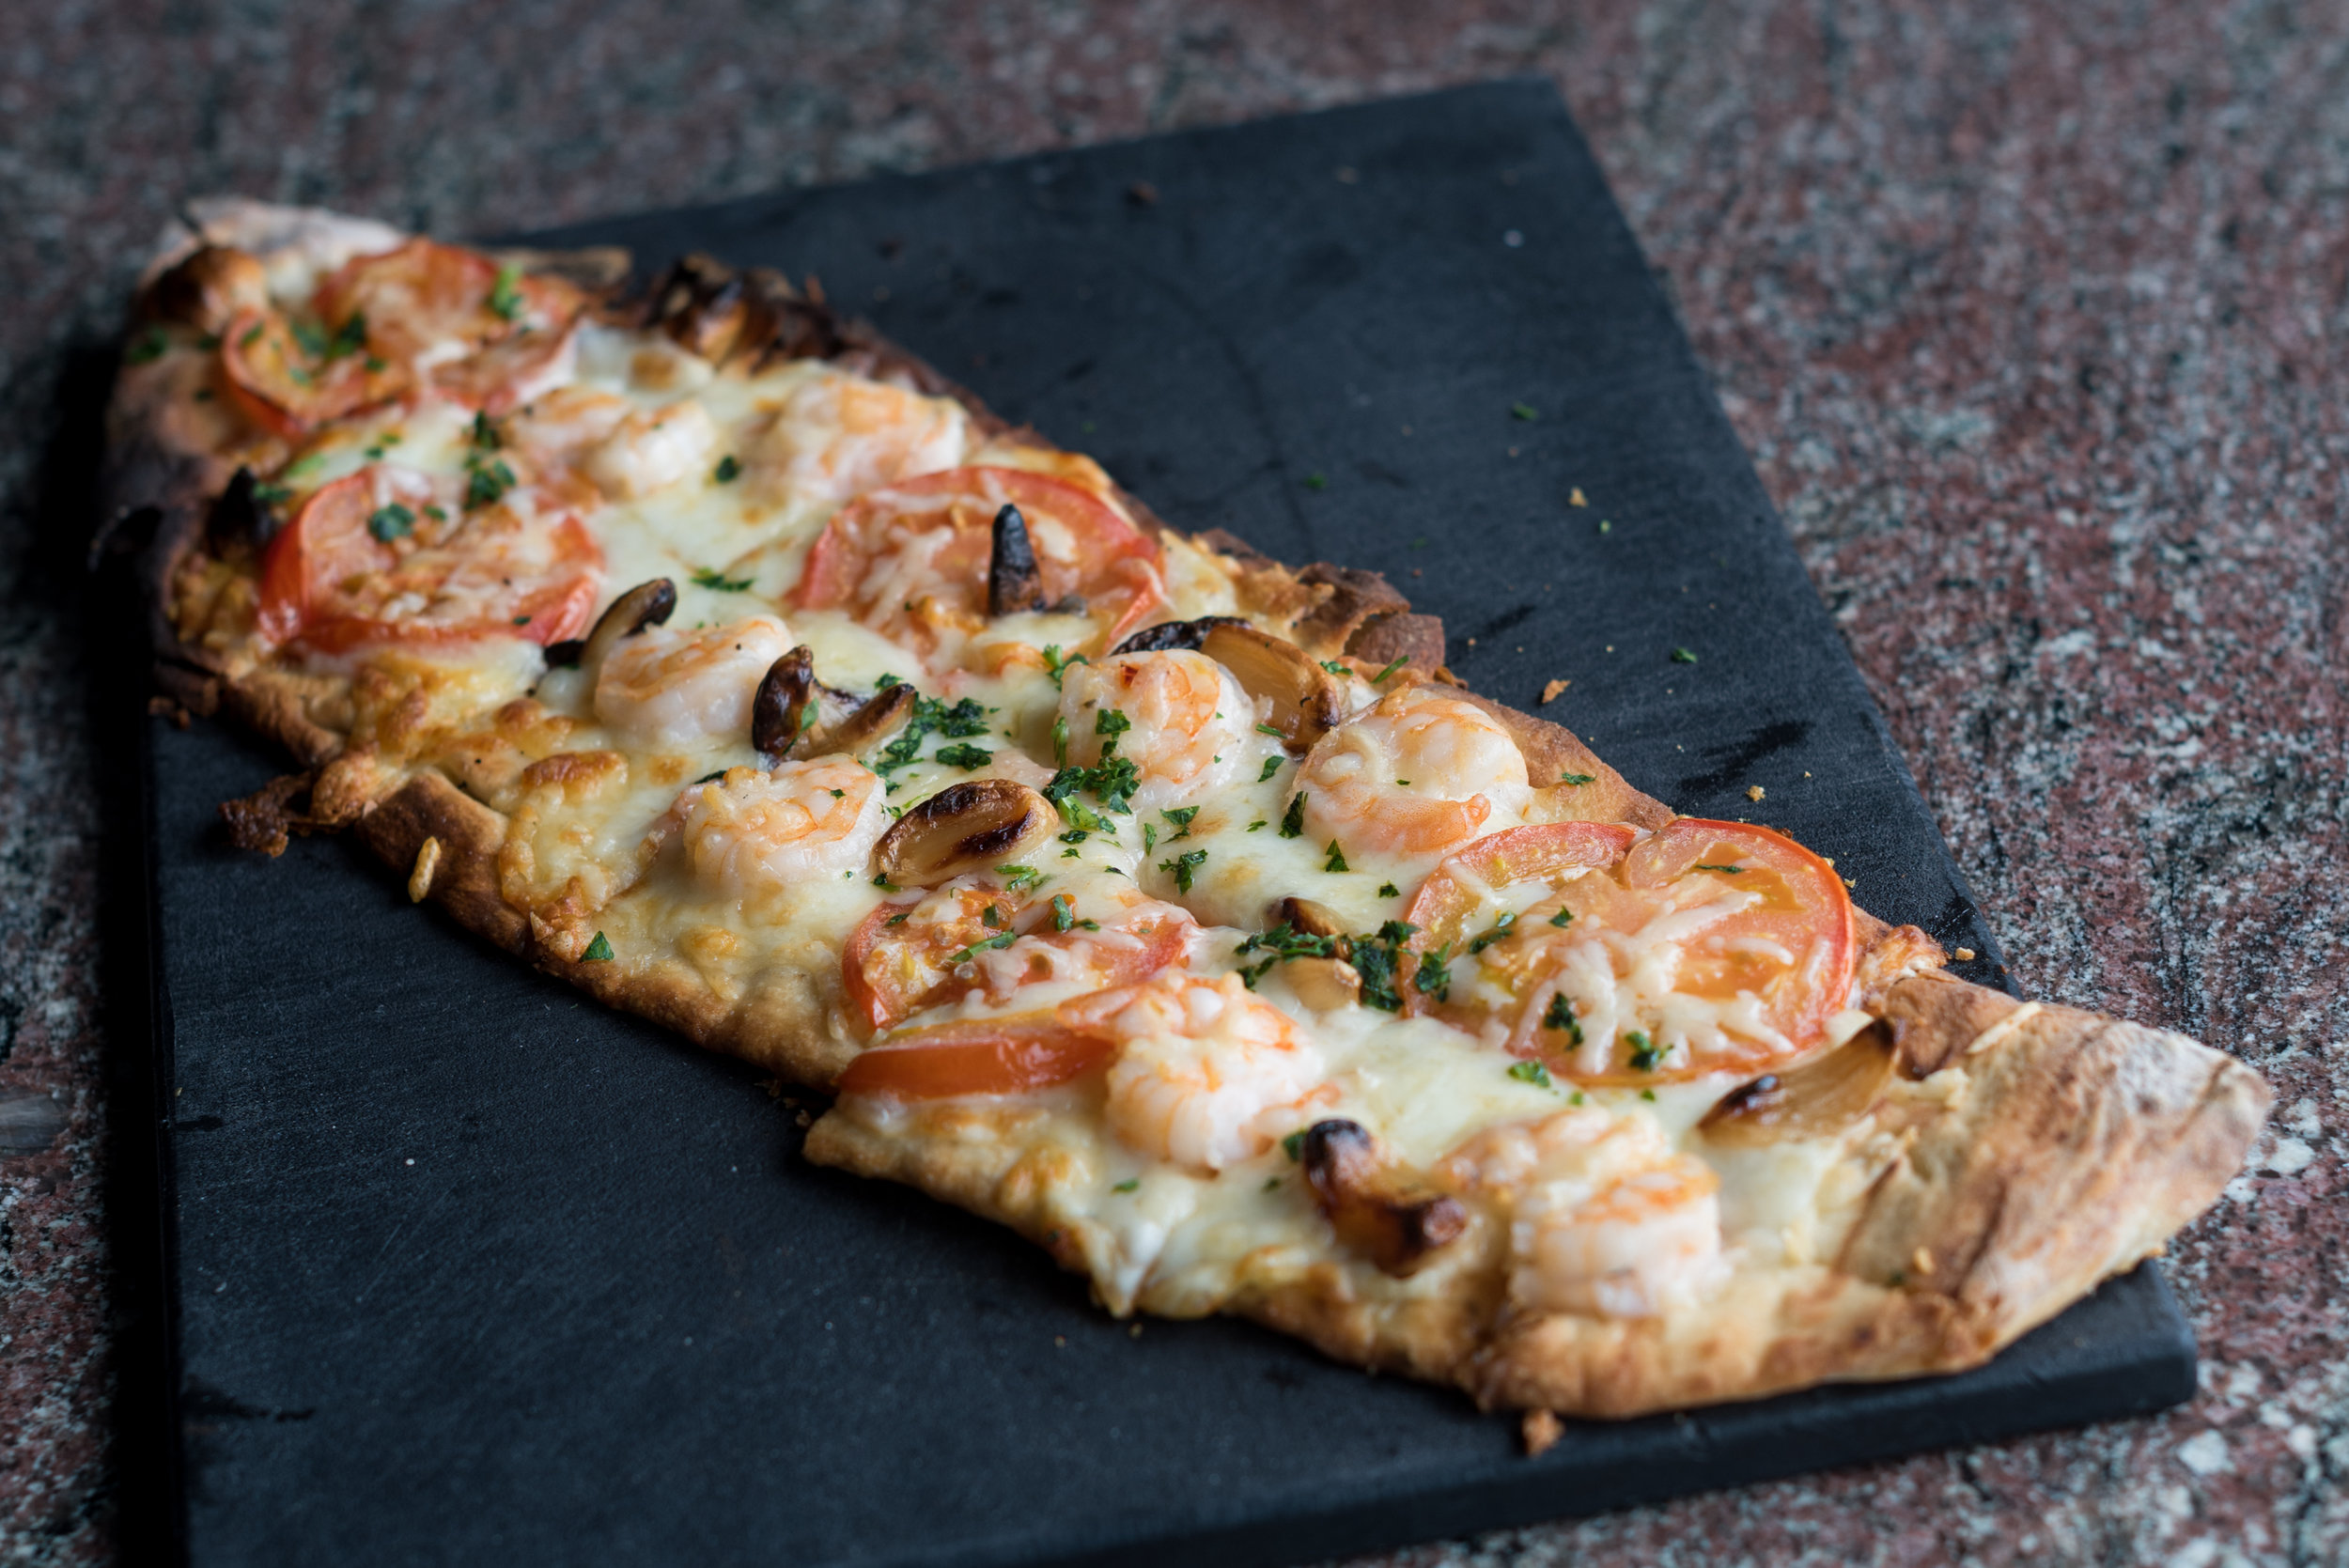 Flatbreads are a staple cuisine at Liv.